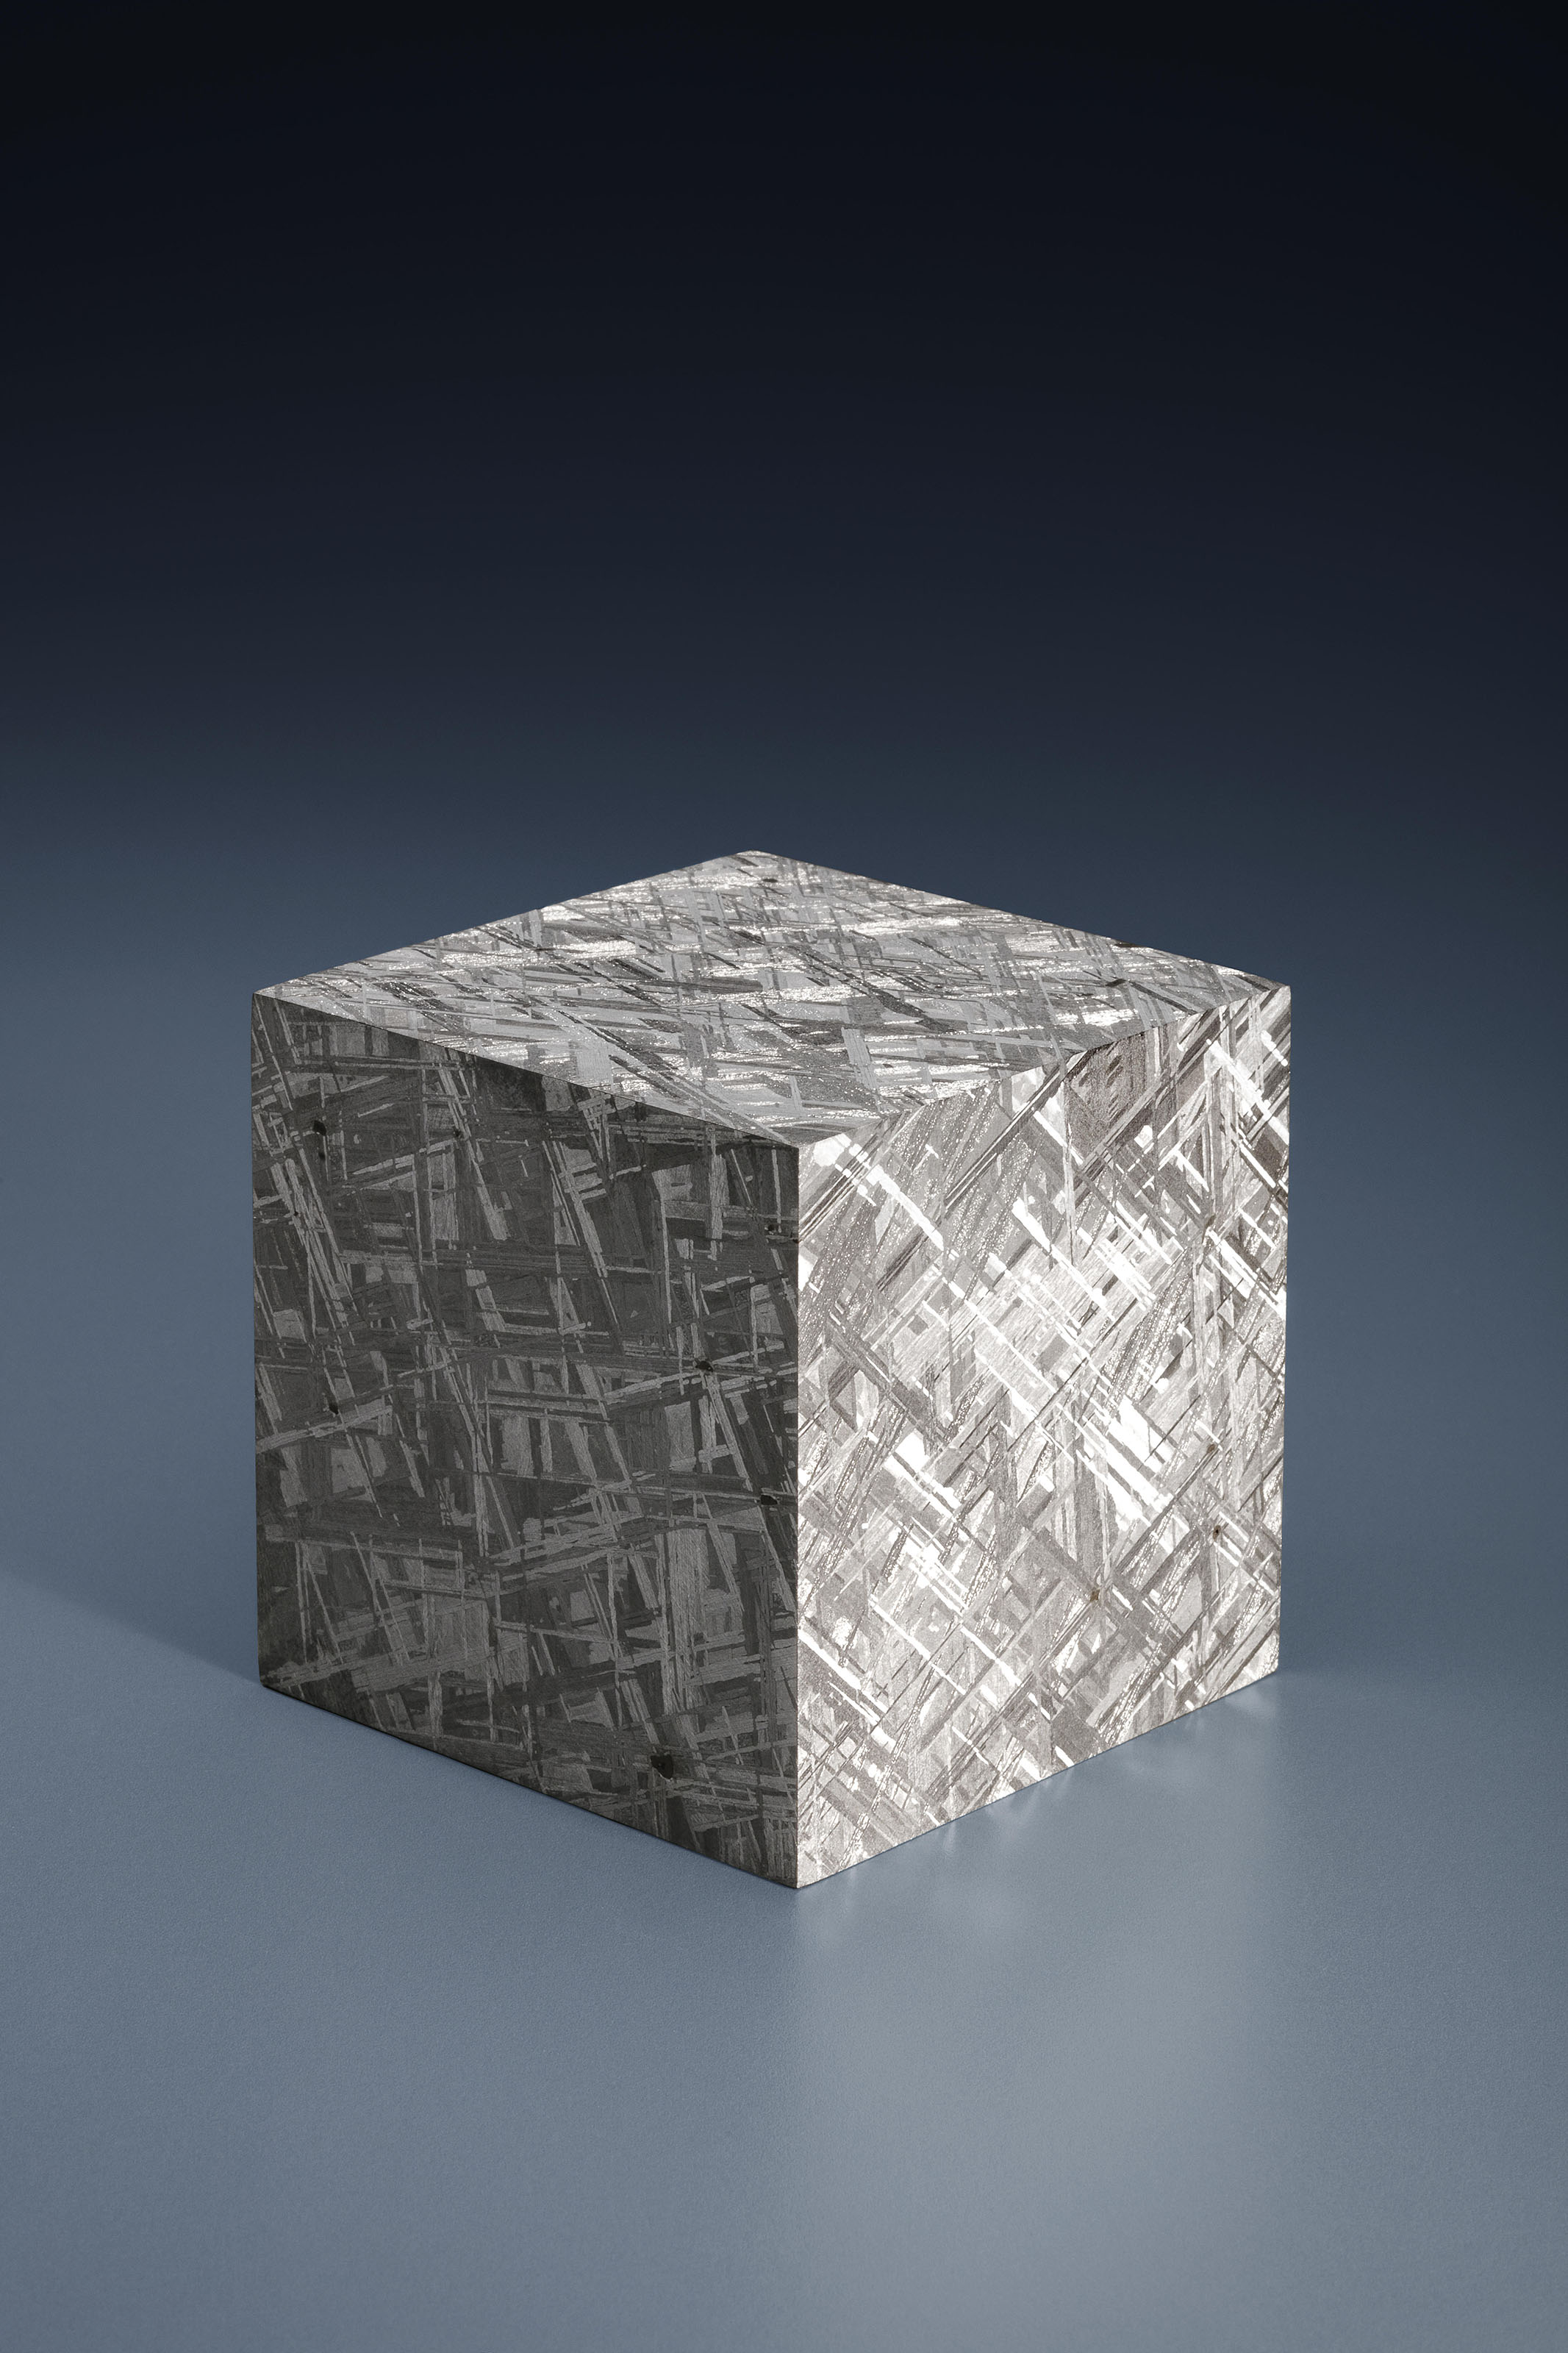 MUONIONALUSTA METEORITE CUBE — CRYSTALLINE STRUCTURE DRAMATIZED IN THREE DIMENSIONS